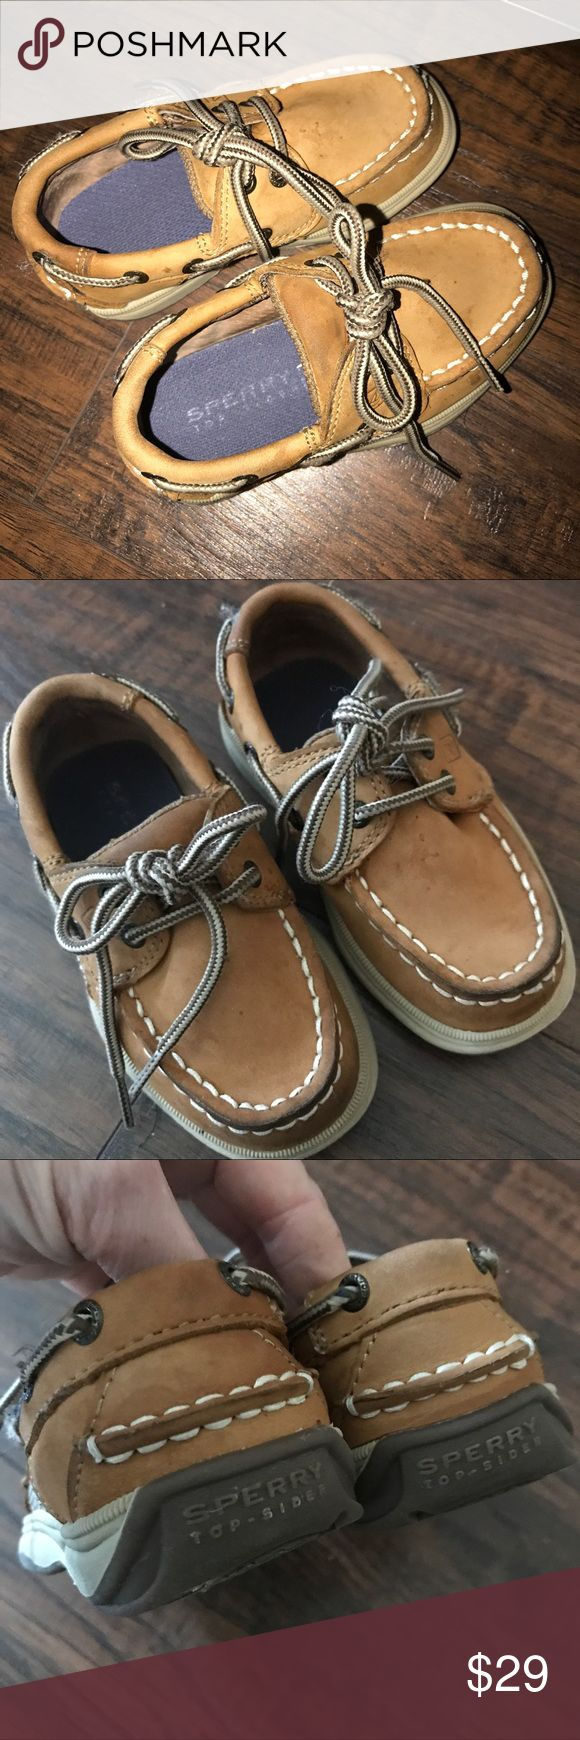 Sperrys boat shoes boy 7M toddler Tan caramel 7 toddlerSperry's Tan boat shoes VGUC a few water marks or dark spots from a gentle clean up. Used very little. Smoke free dog friendly home Sperry Top-Sider Shoes